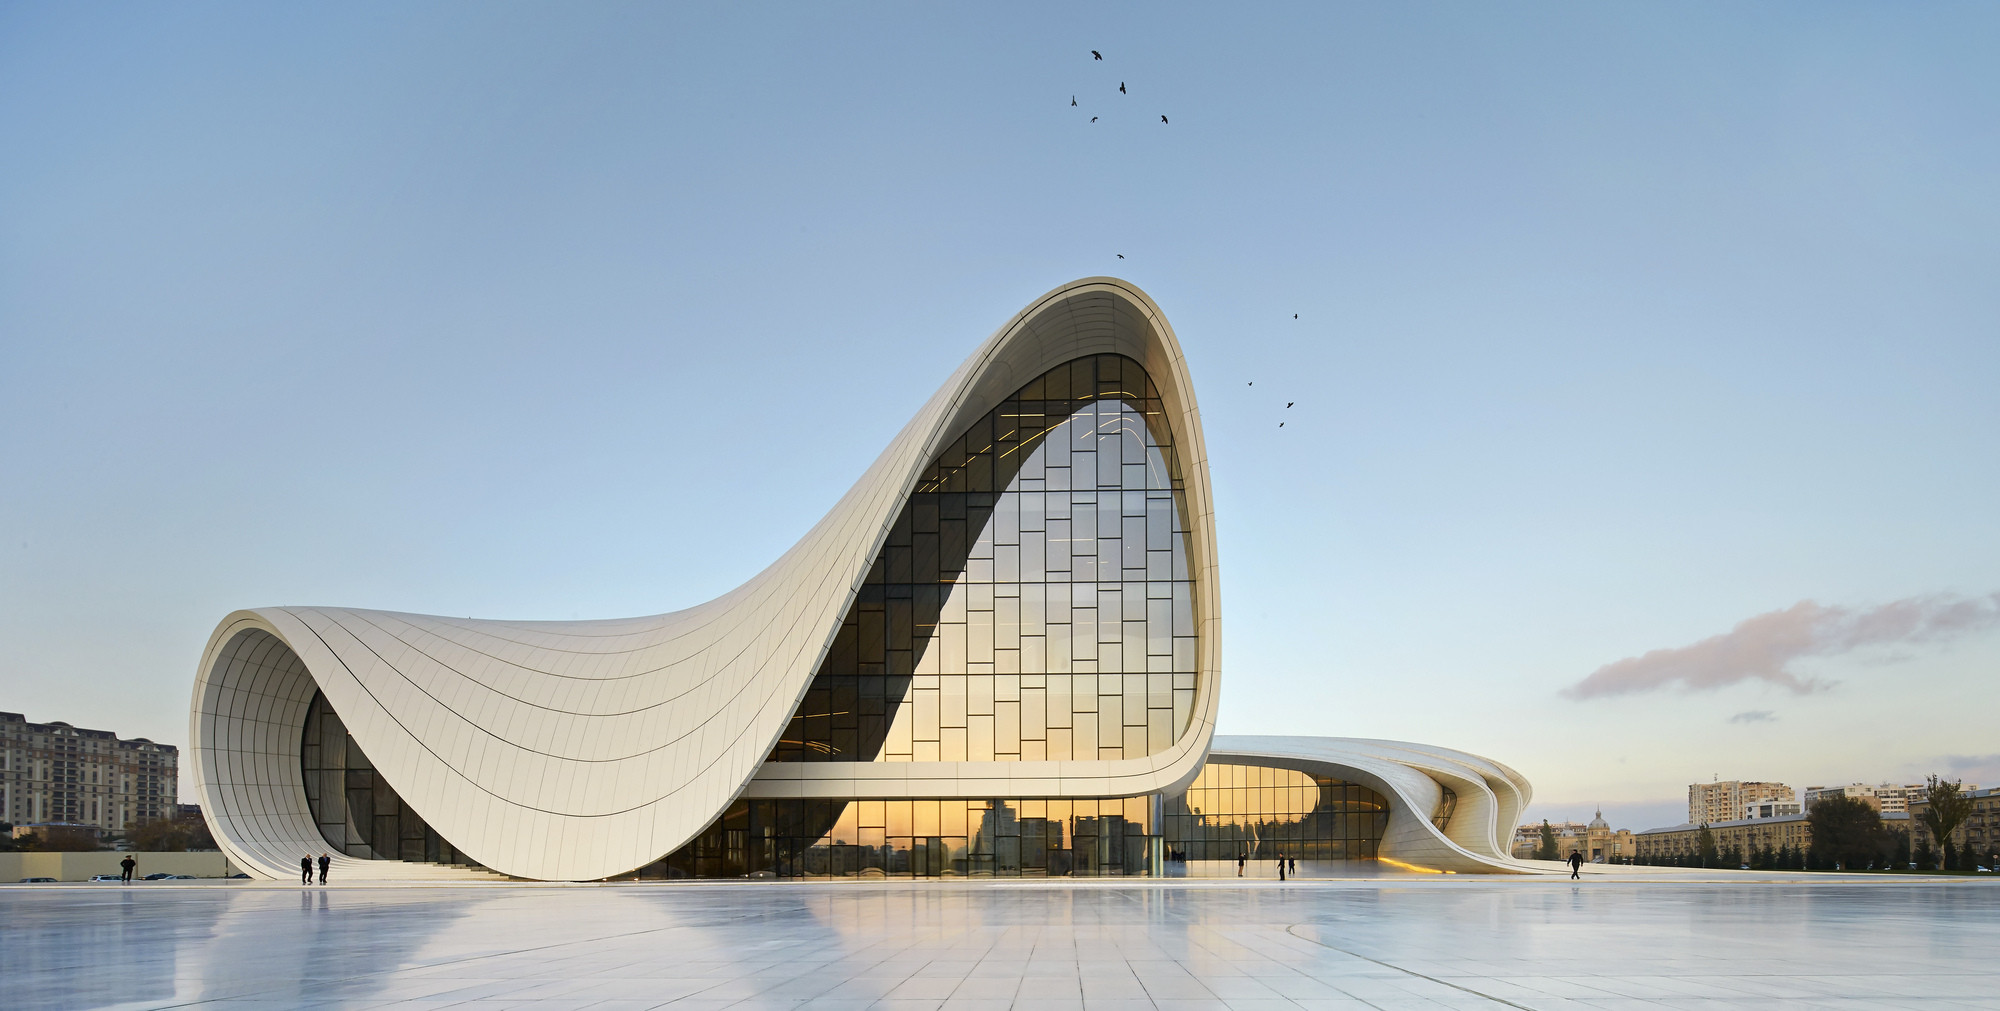 heydar-aliyev-center-zaha-hadid-architects.jpg